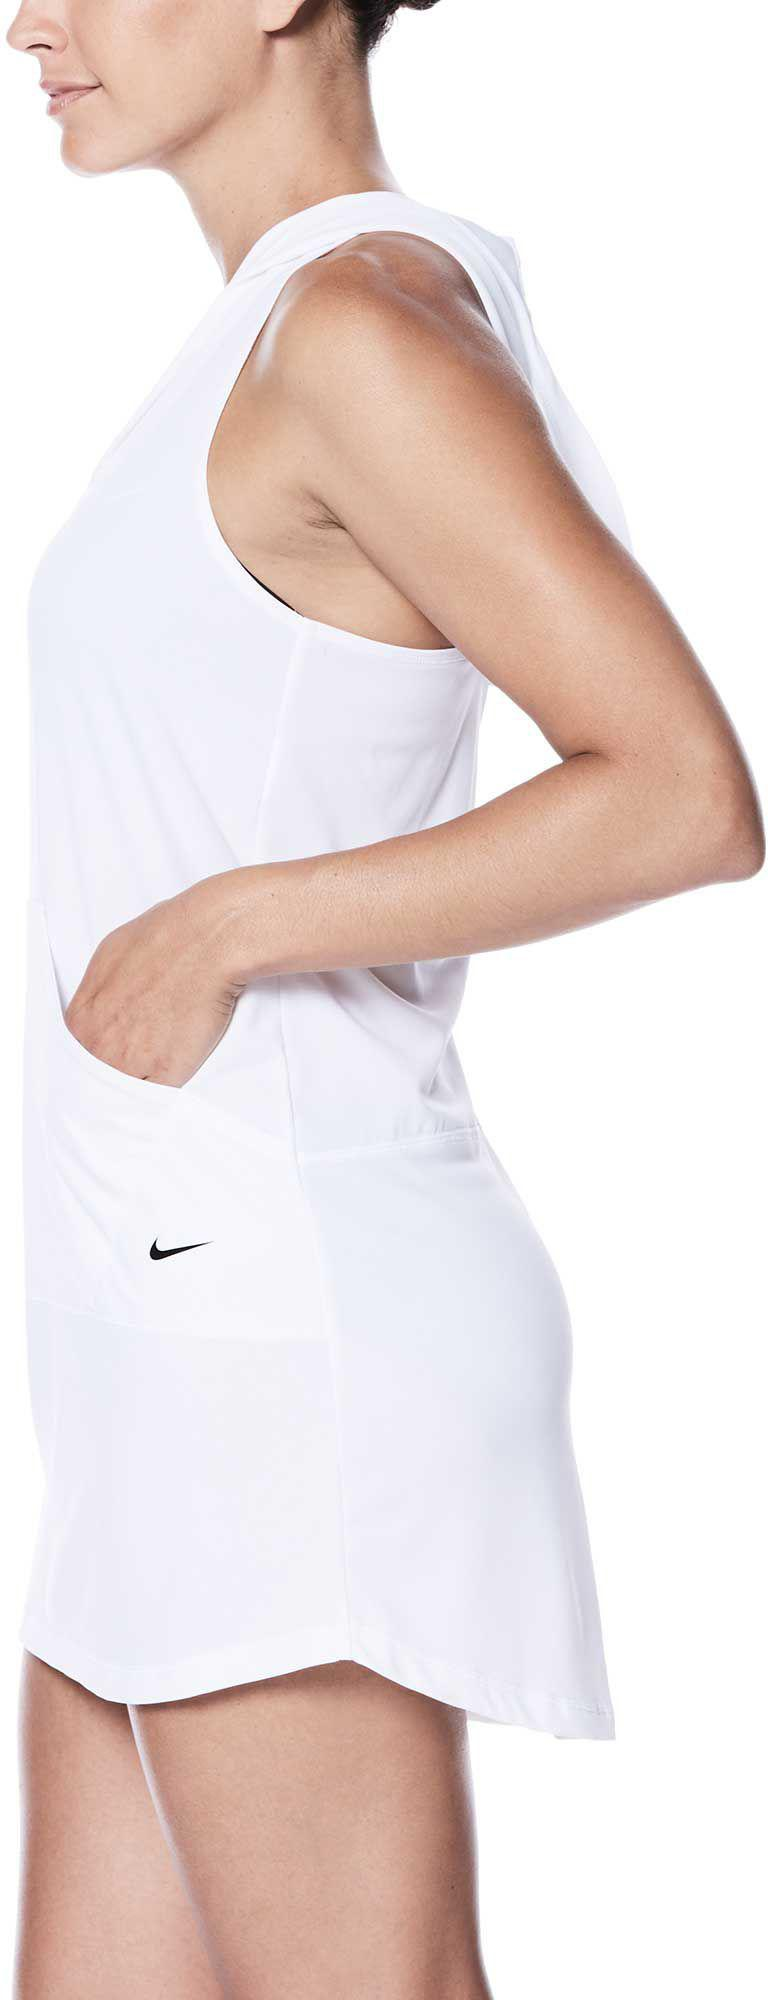 016abe28a12ab Nike Hooded Swimsuit Cover-up Dress in White - Lyst